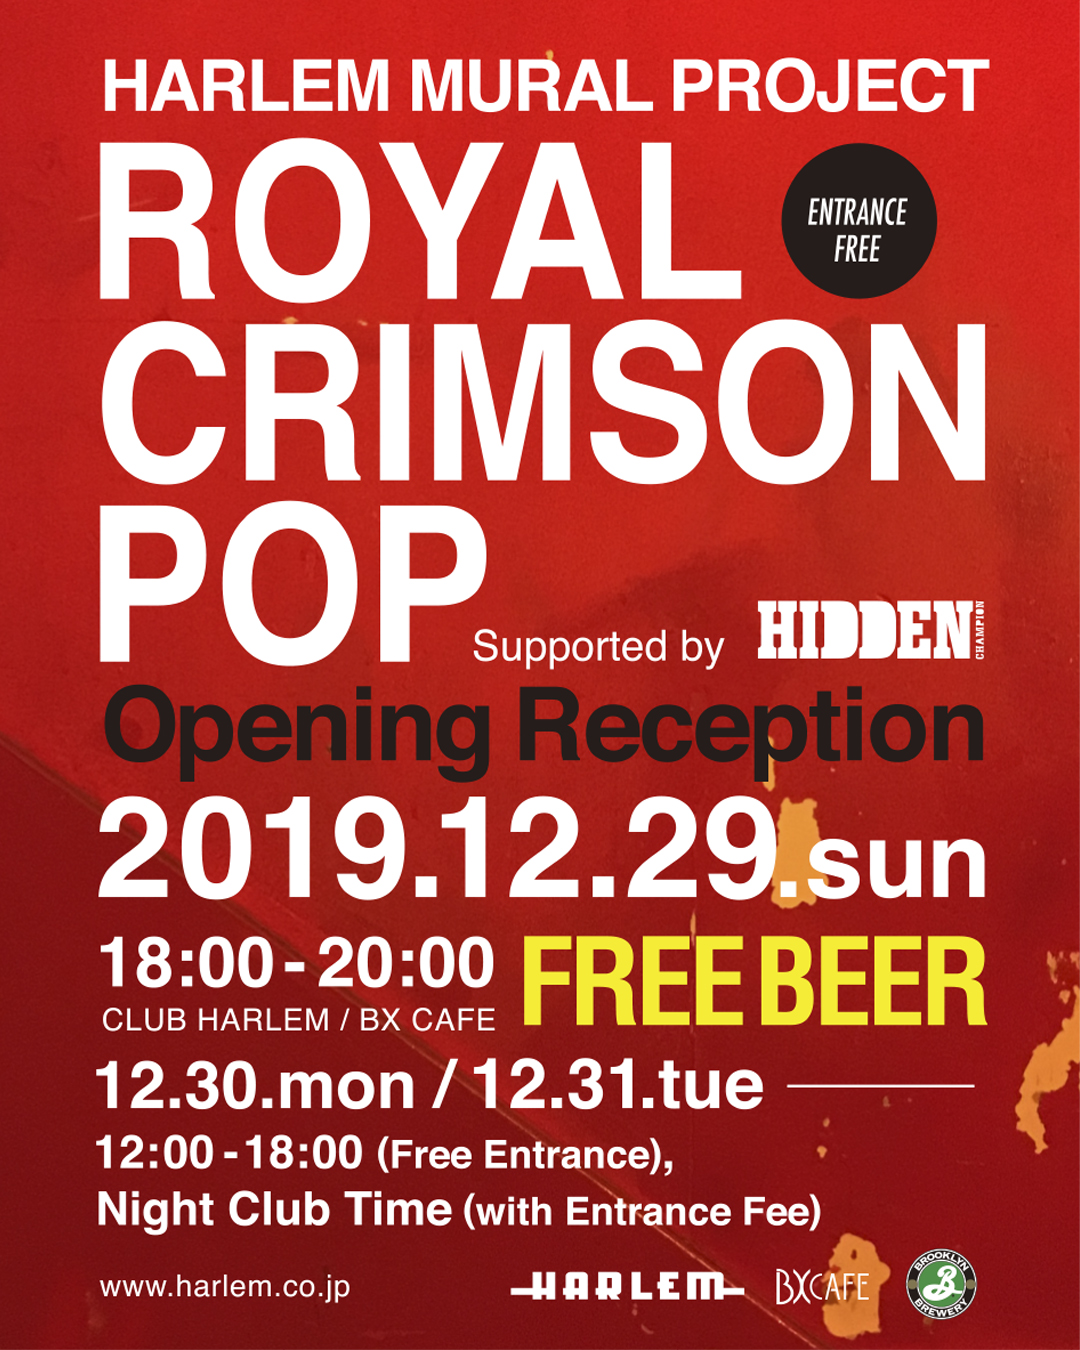 """ROYAL CRIMSON POP"" Supported by HIDDEN CHAMPION"